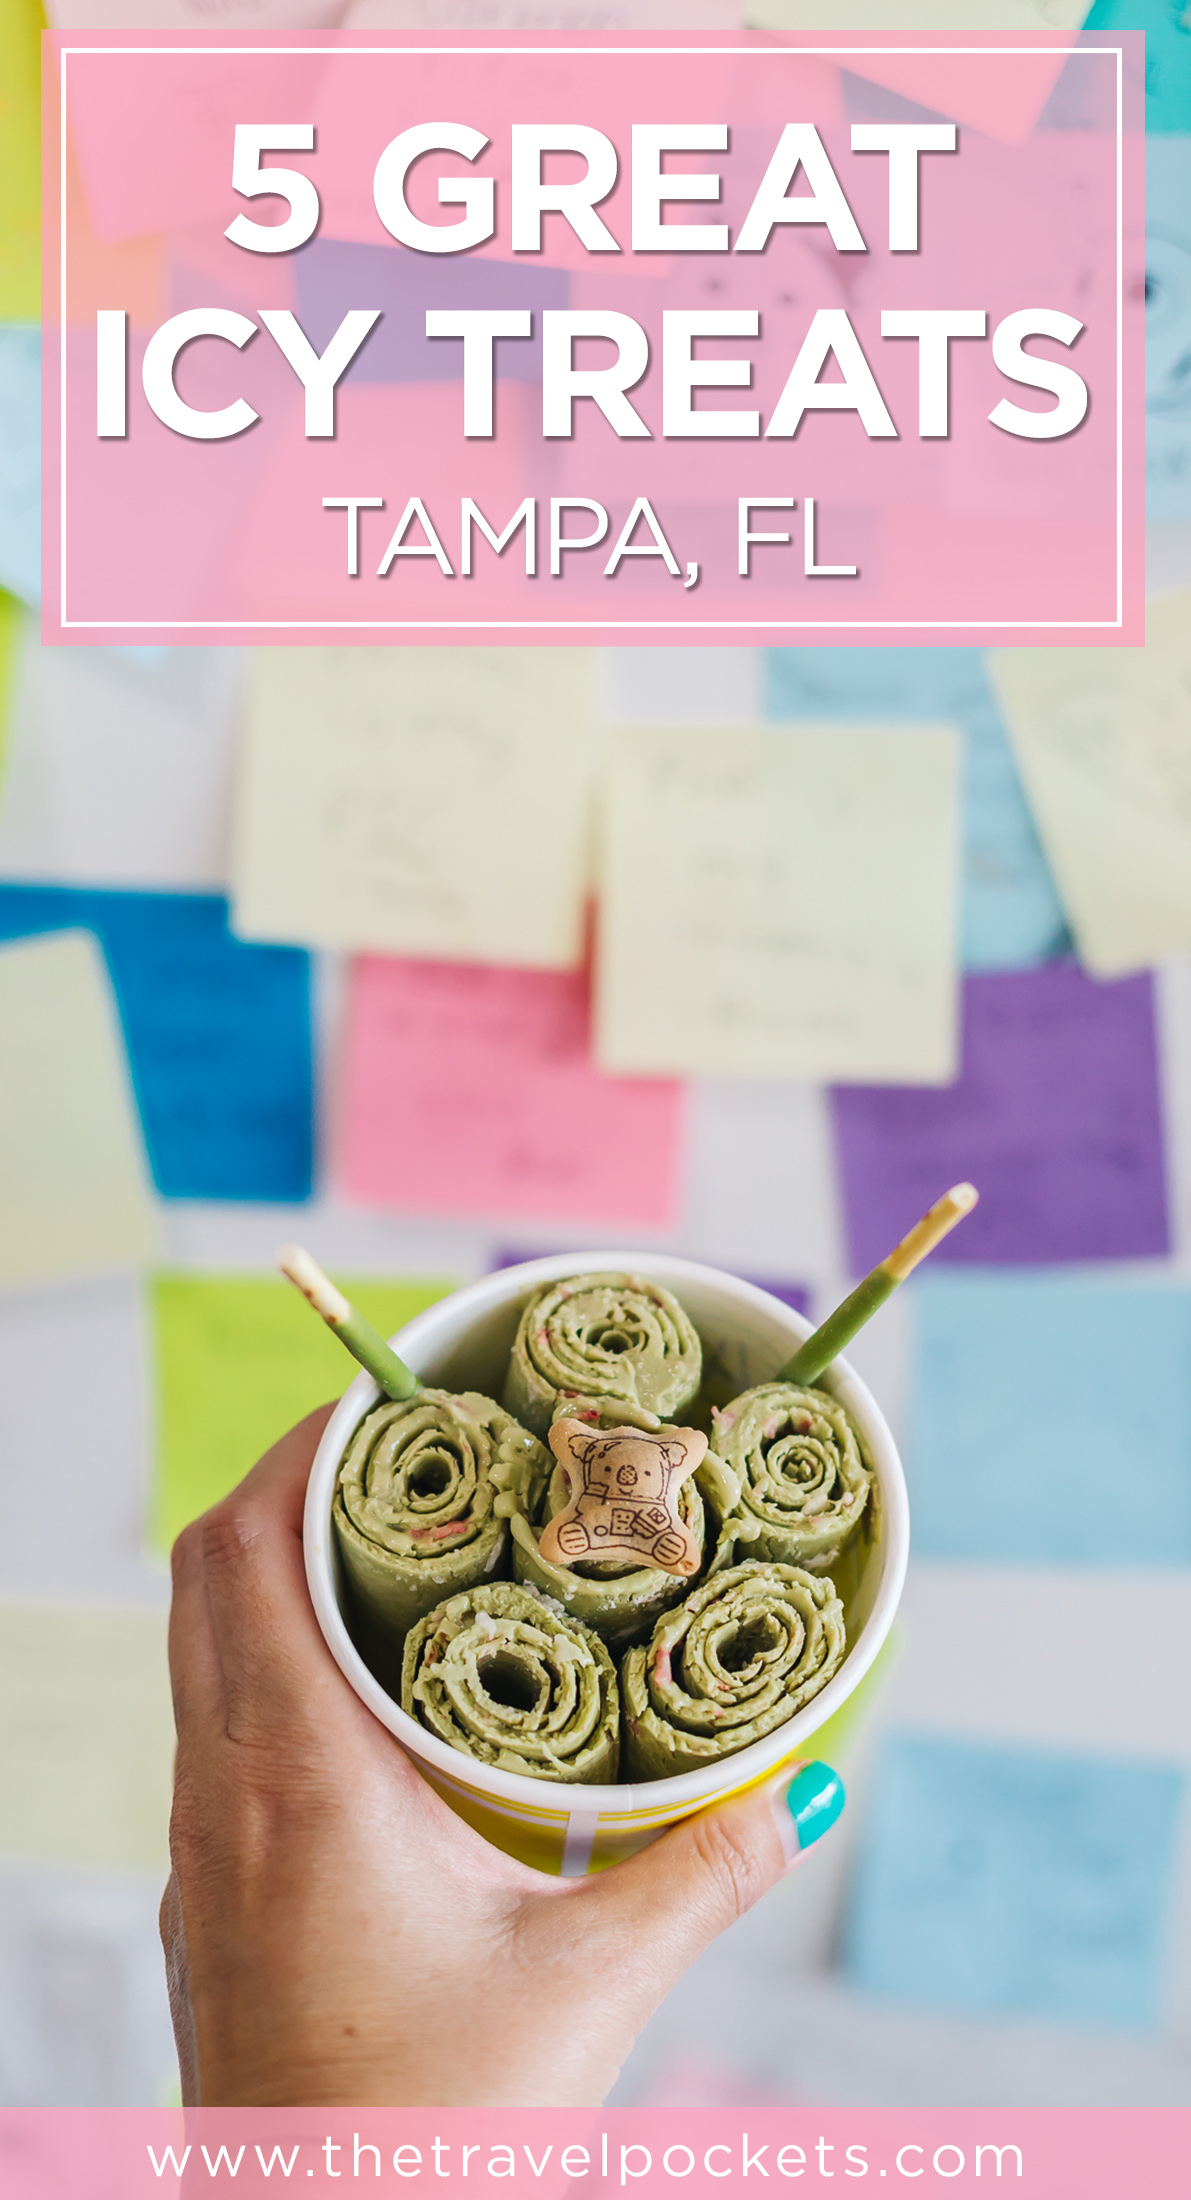 PINTEREST TAMPA ICY TREATS + www.thetravelpockets.com